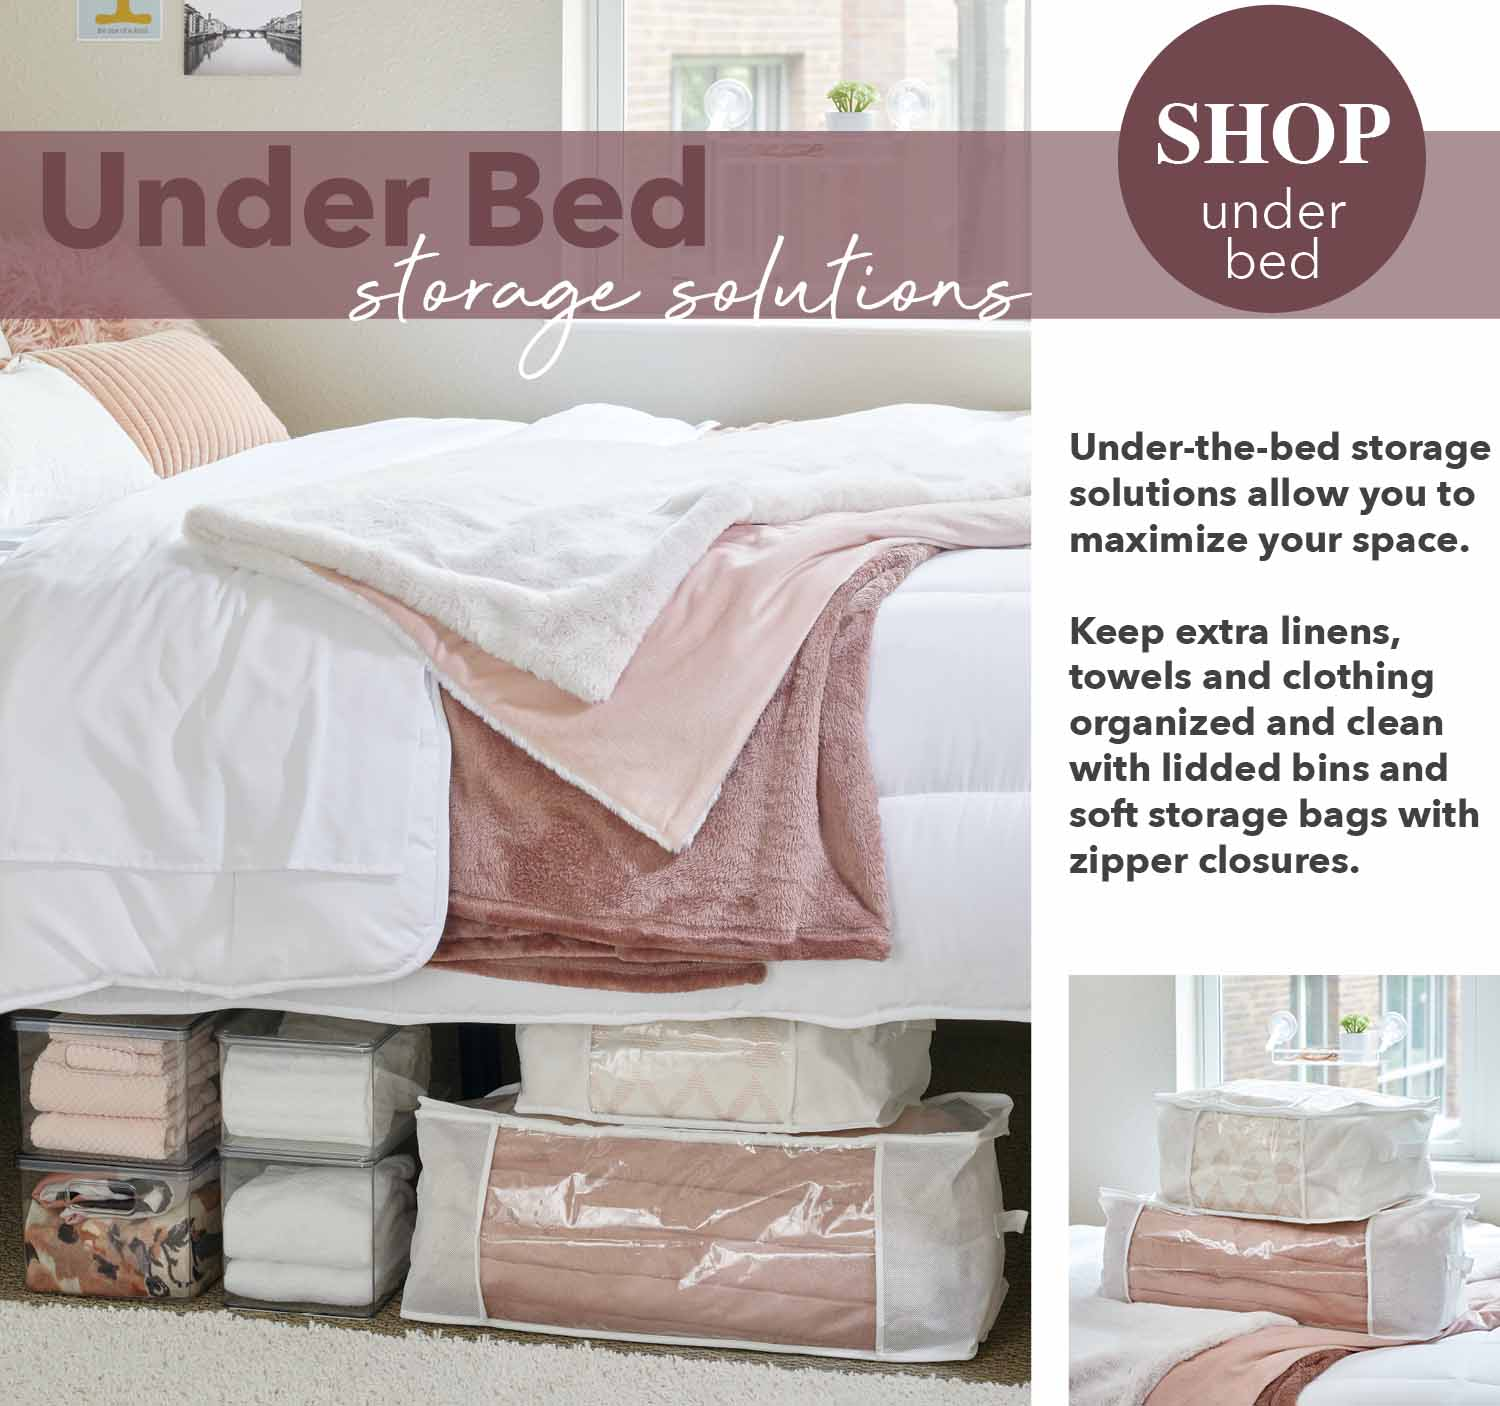 under bed storage solutions maximize your space keep extras tucked away